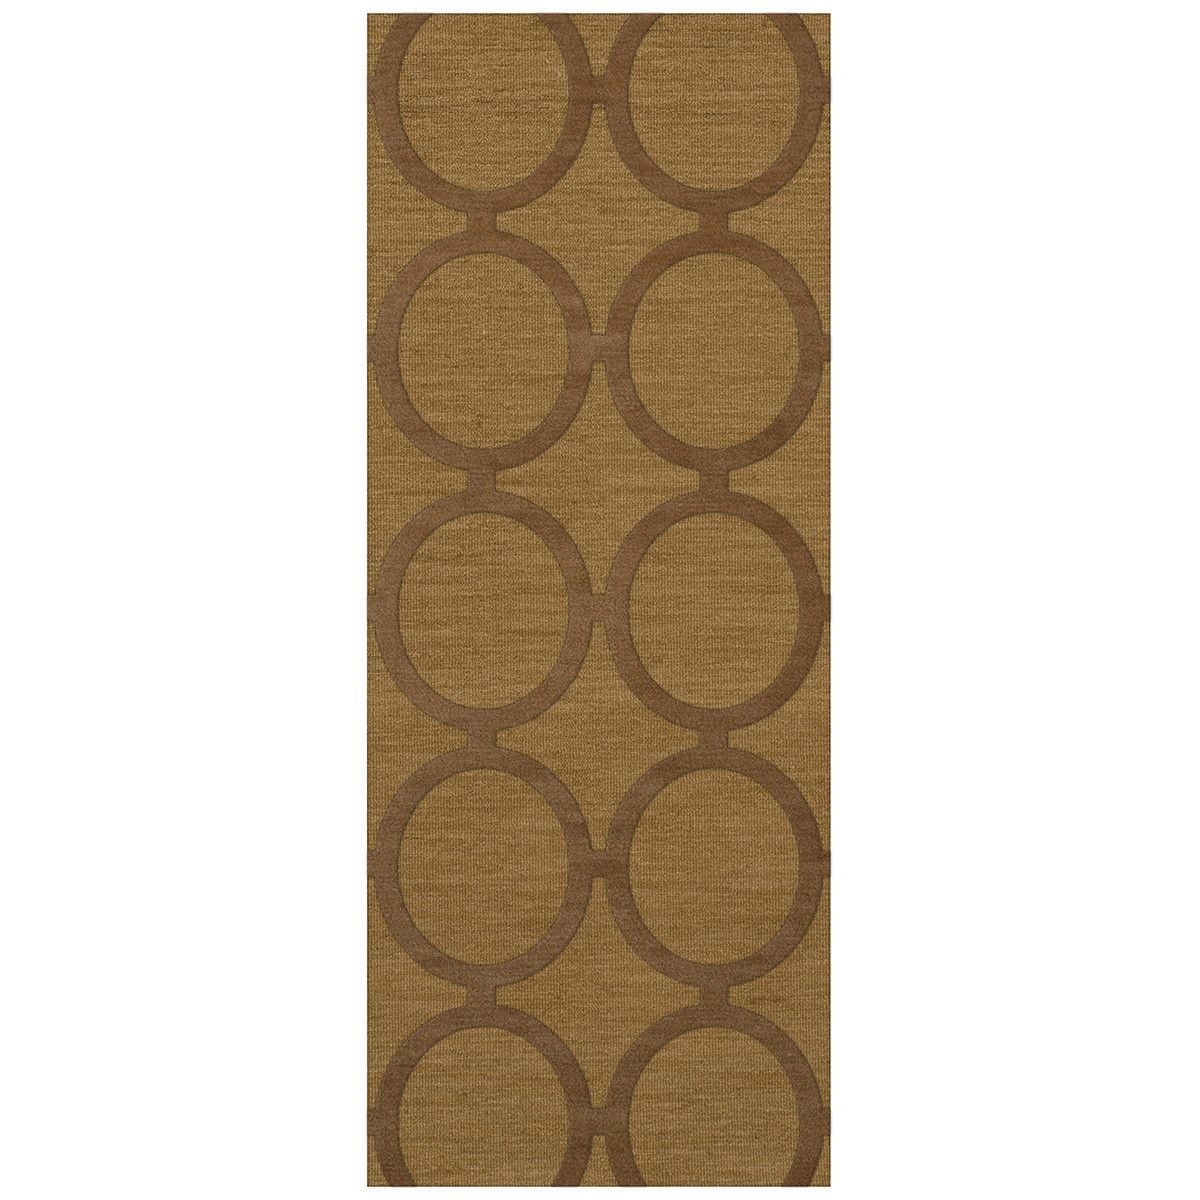 Dalyn Rugs Dover DV14 Gold Dust Area Rug